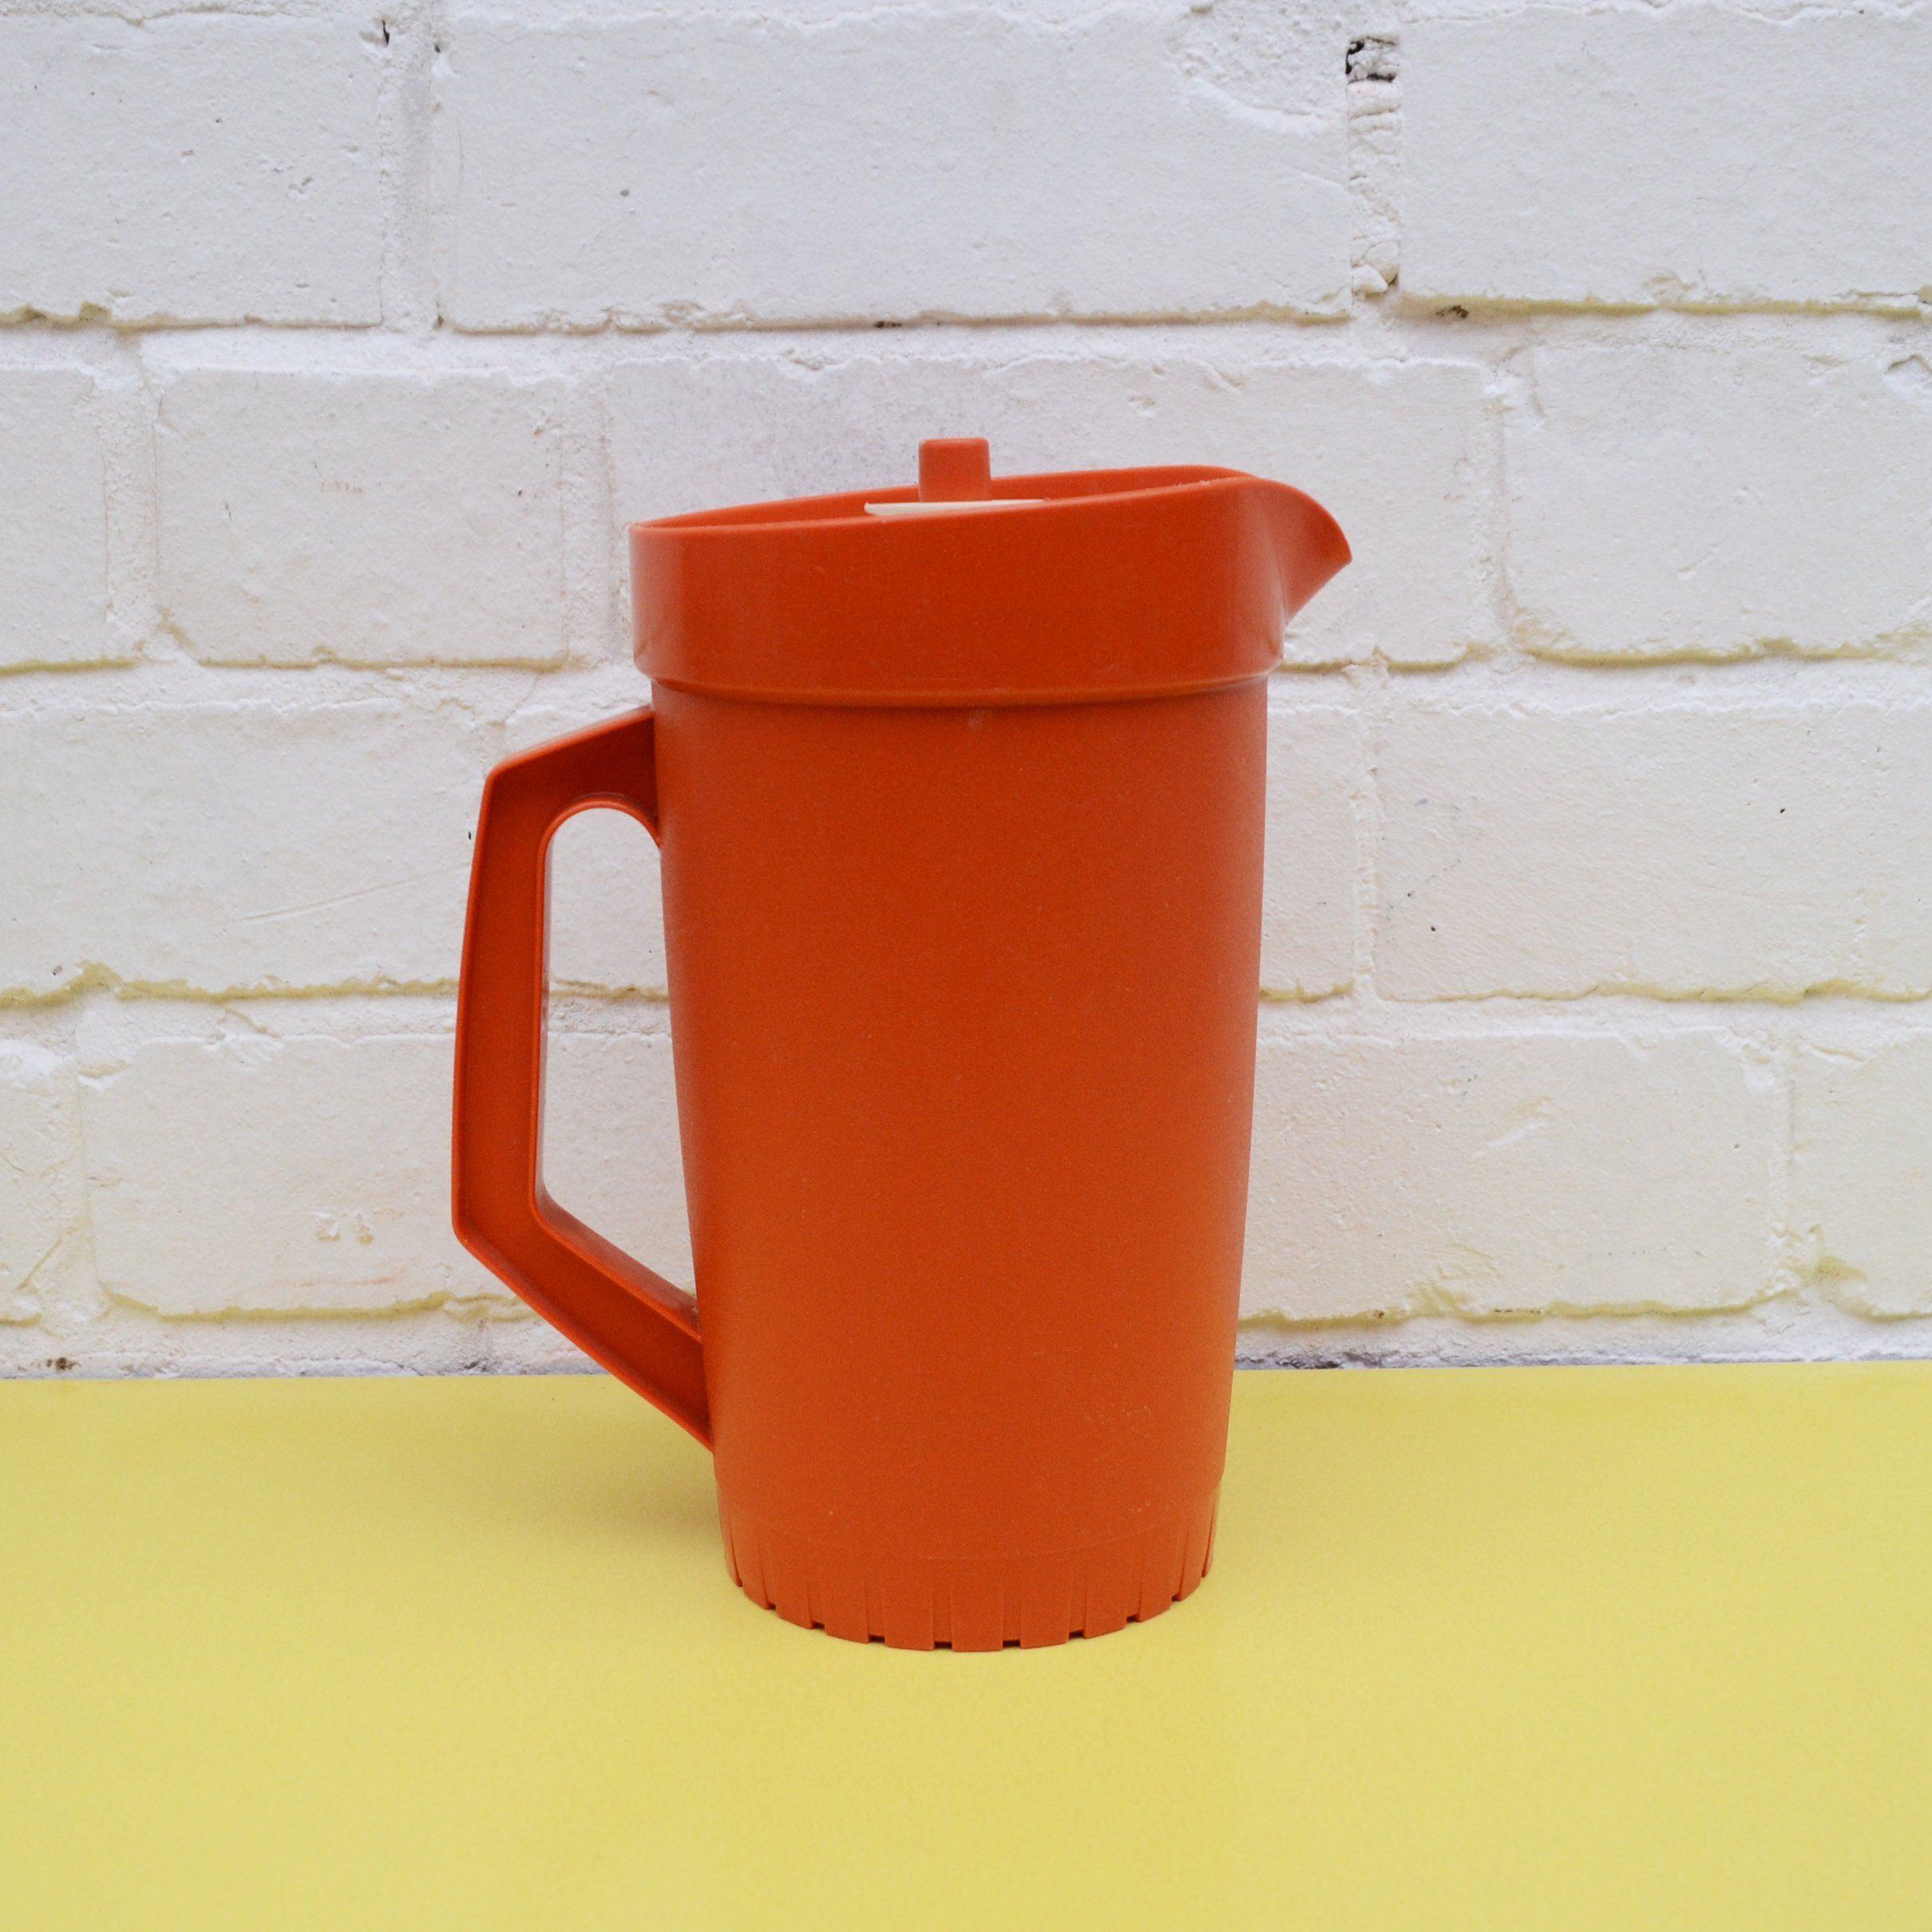 Vintage Tupperware Pitcher, Orange Plastic Jug, Camping Jug, Picnic Jug, Retro Plastic Jug, Orange Tupperware, Large Pitcher, Orange Jug by LittleYellowTable on Etsy #plasticjugs Vintage Tupperware Pitcher, Orange Plastic Jug, Camping Jug, Picnic Jug, Retro Plastic Jug, Orange Tupperware, Large Pitcher, Orange Jug by LittleYellowTable on Etsy #plasticjugs Vintage Tupperware Pitcher, Orange Plastic Jug, Camping Jug, Picnic Jug, Retro Plastic Jug, Orange Tupperware, Large Pitcher, Orange Jug by Li #plasticjugs